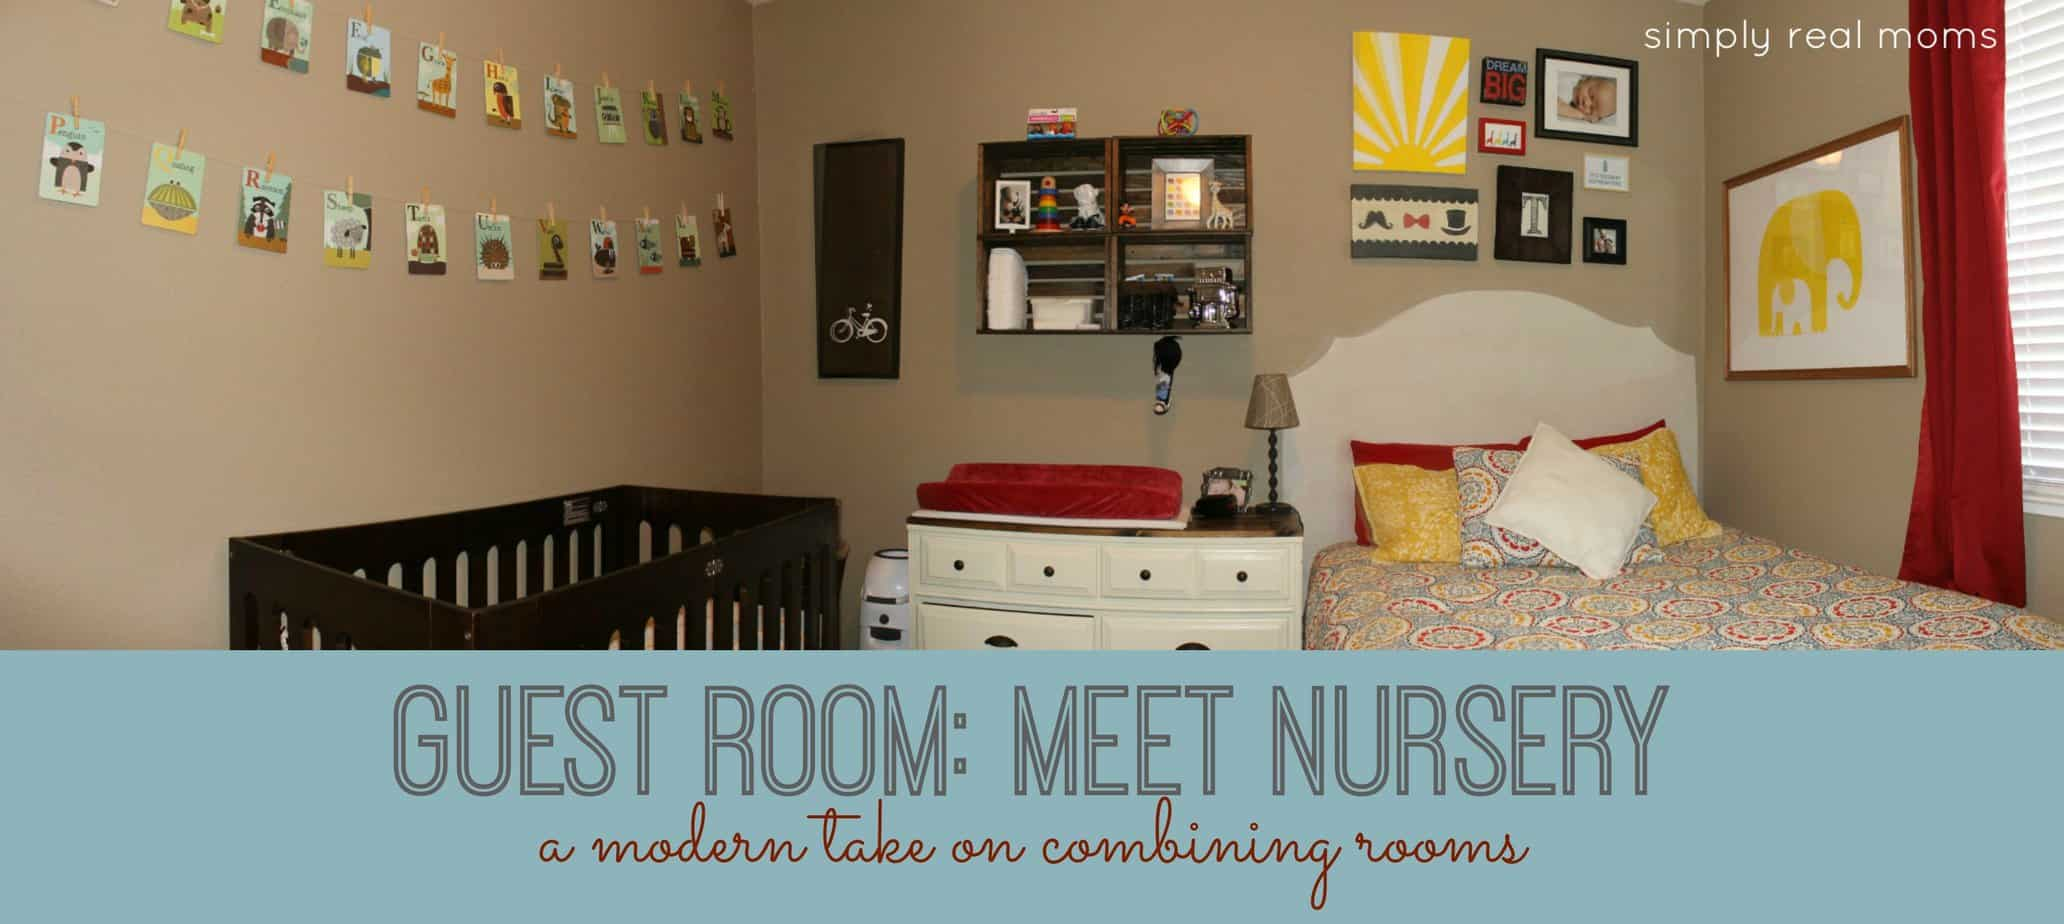 Master Bedroom With Attached Nursery Of Combining A Modern Nursery With A Guest Room